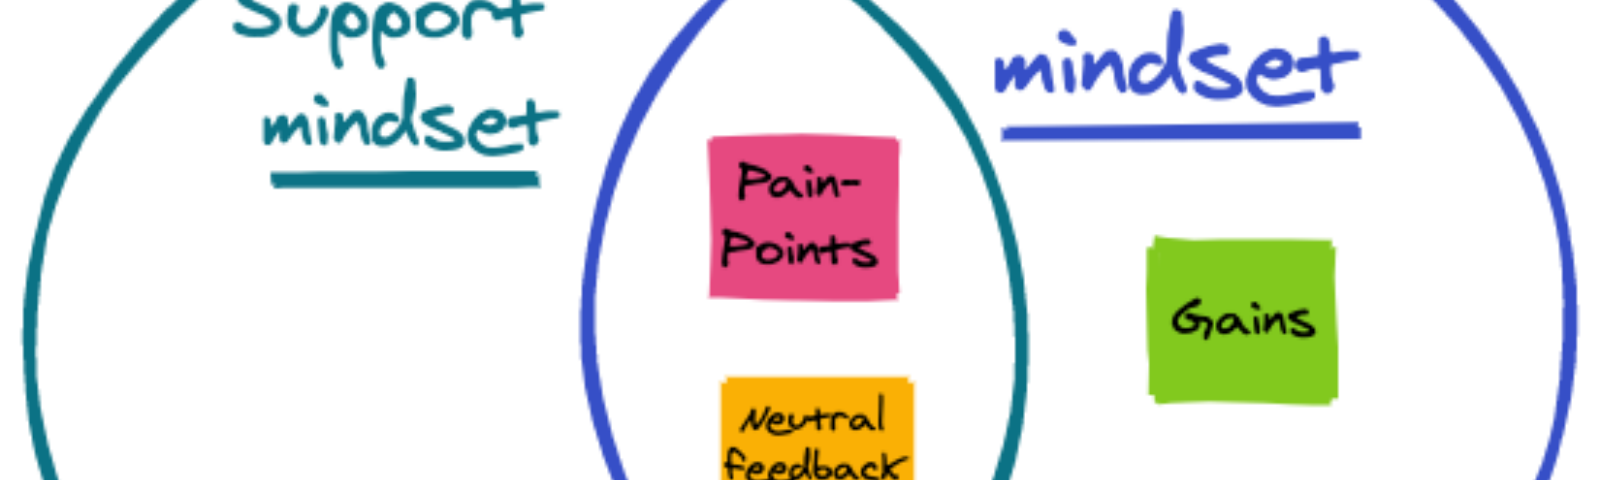 A conglomeration of Support and UX mindsets.